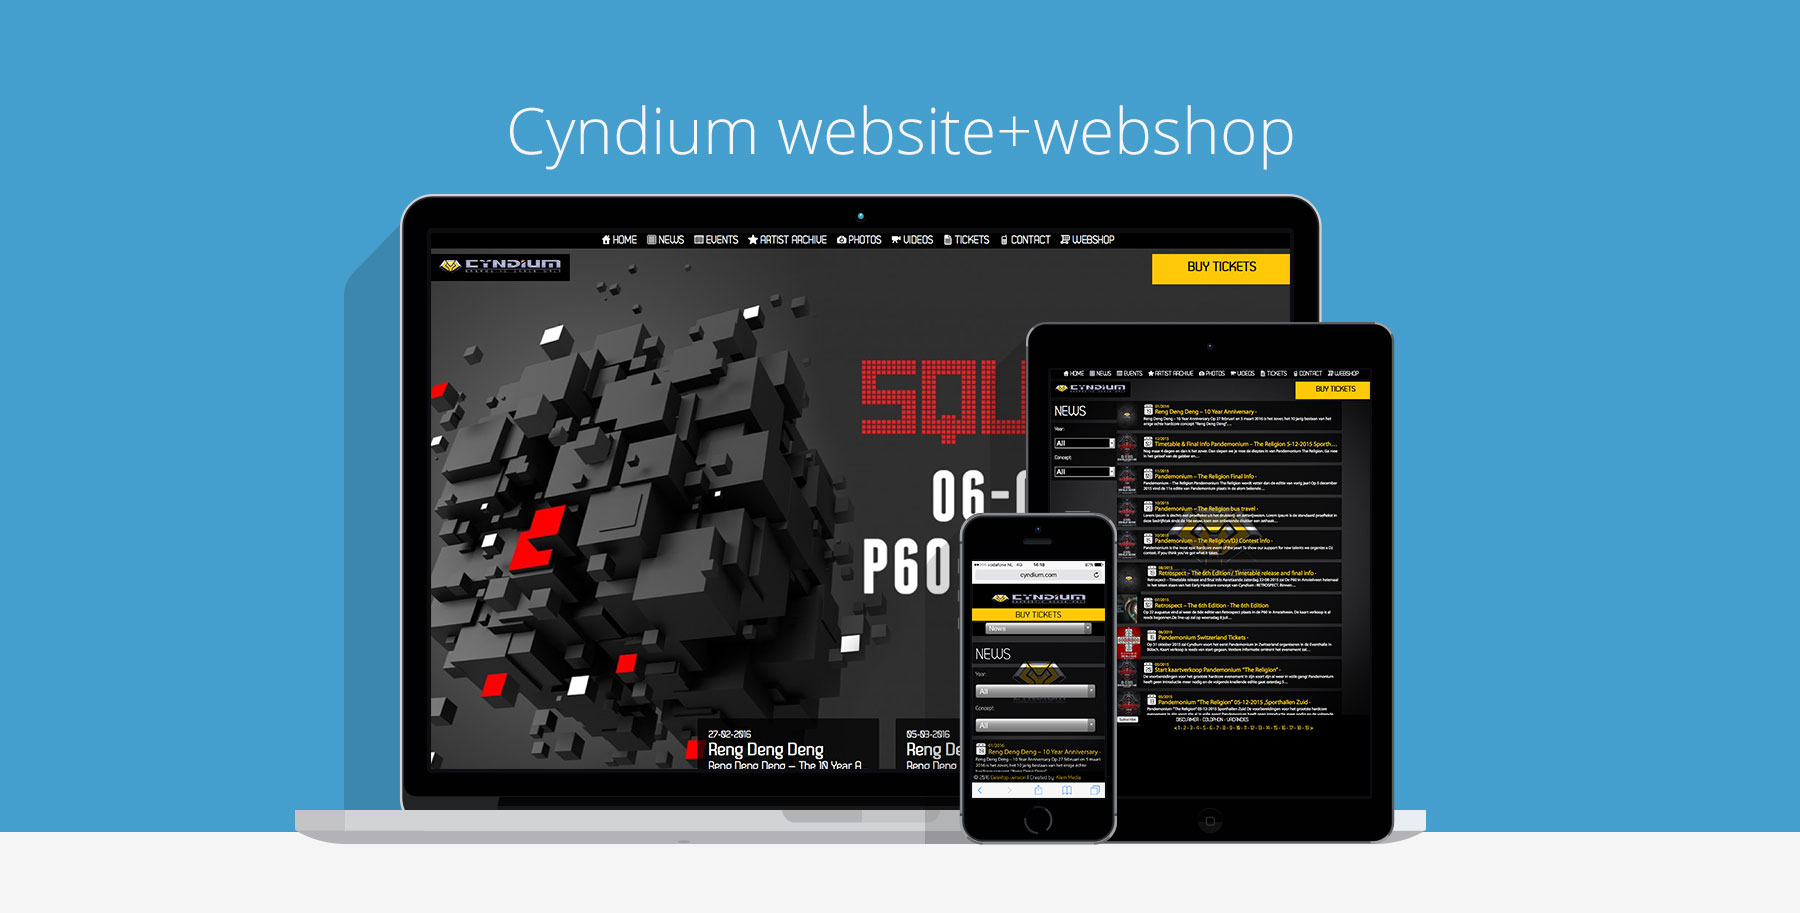 Cyndium events website webshop